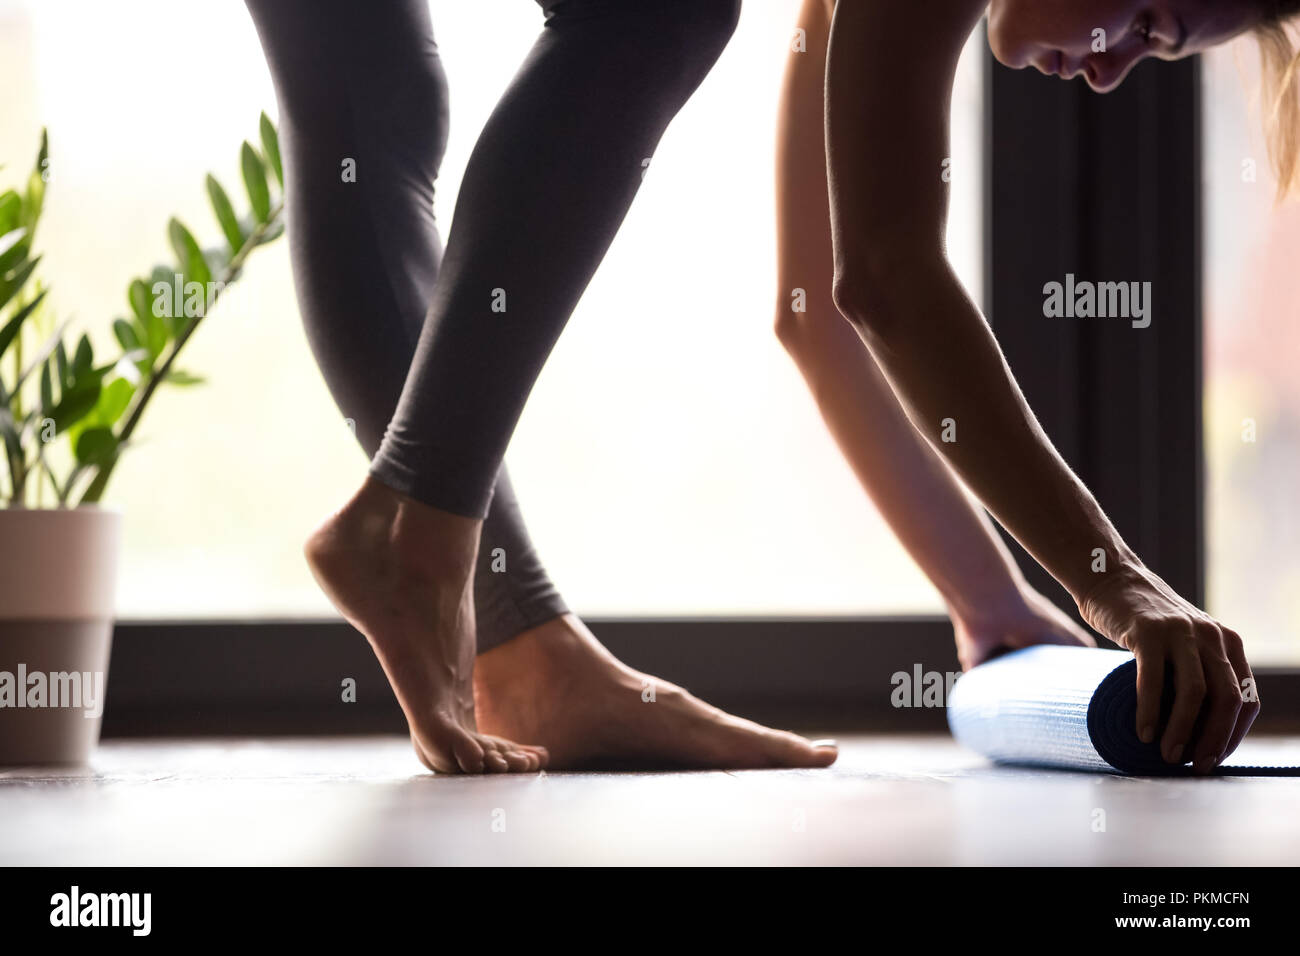 Time for fitness or sport practice concept - Stock Image